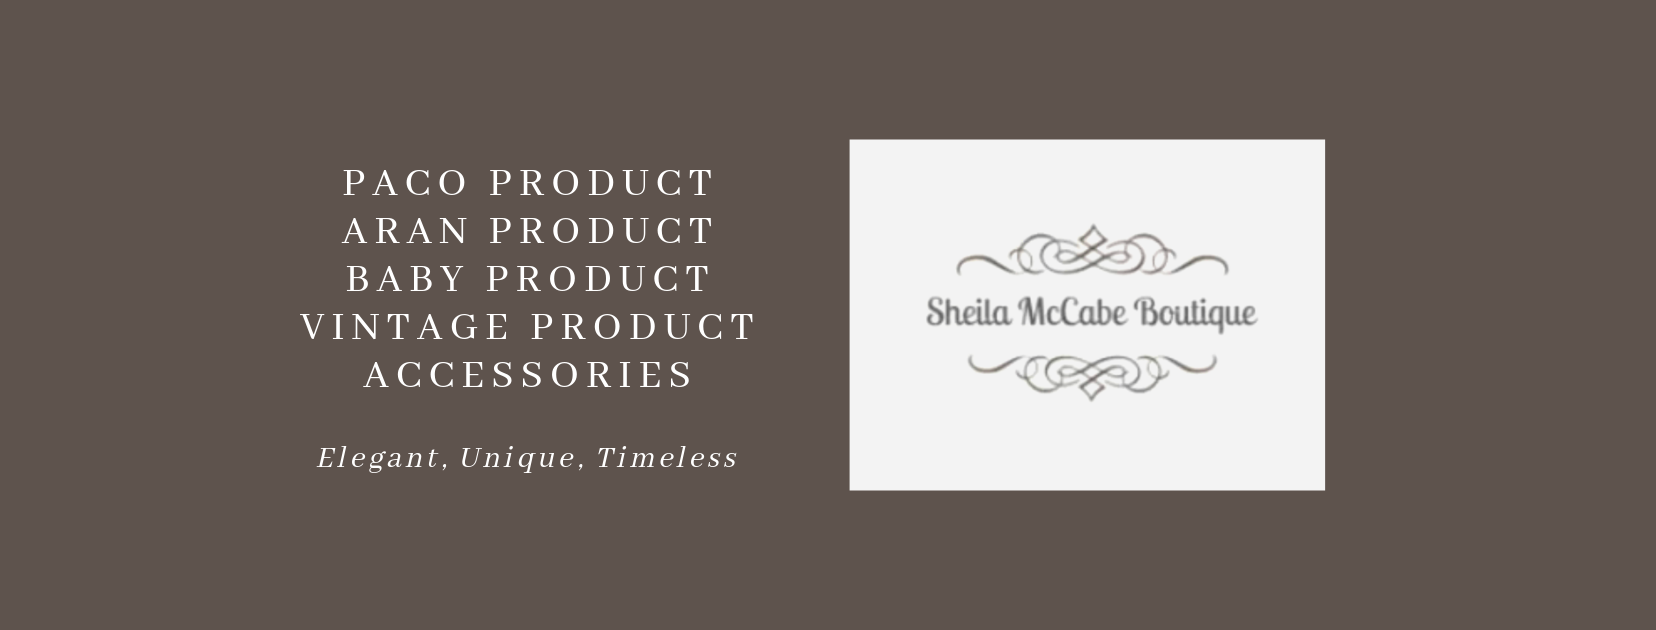 Sheila McCabe Boutique